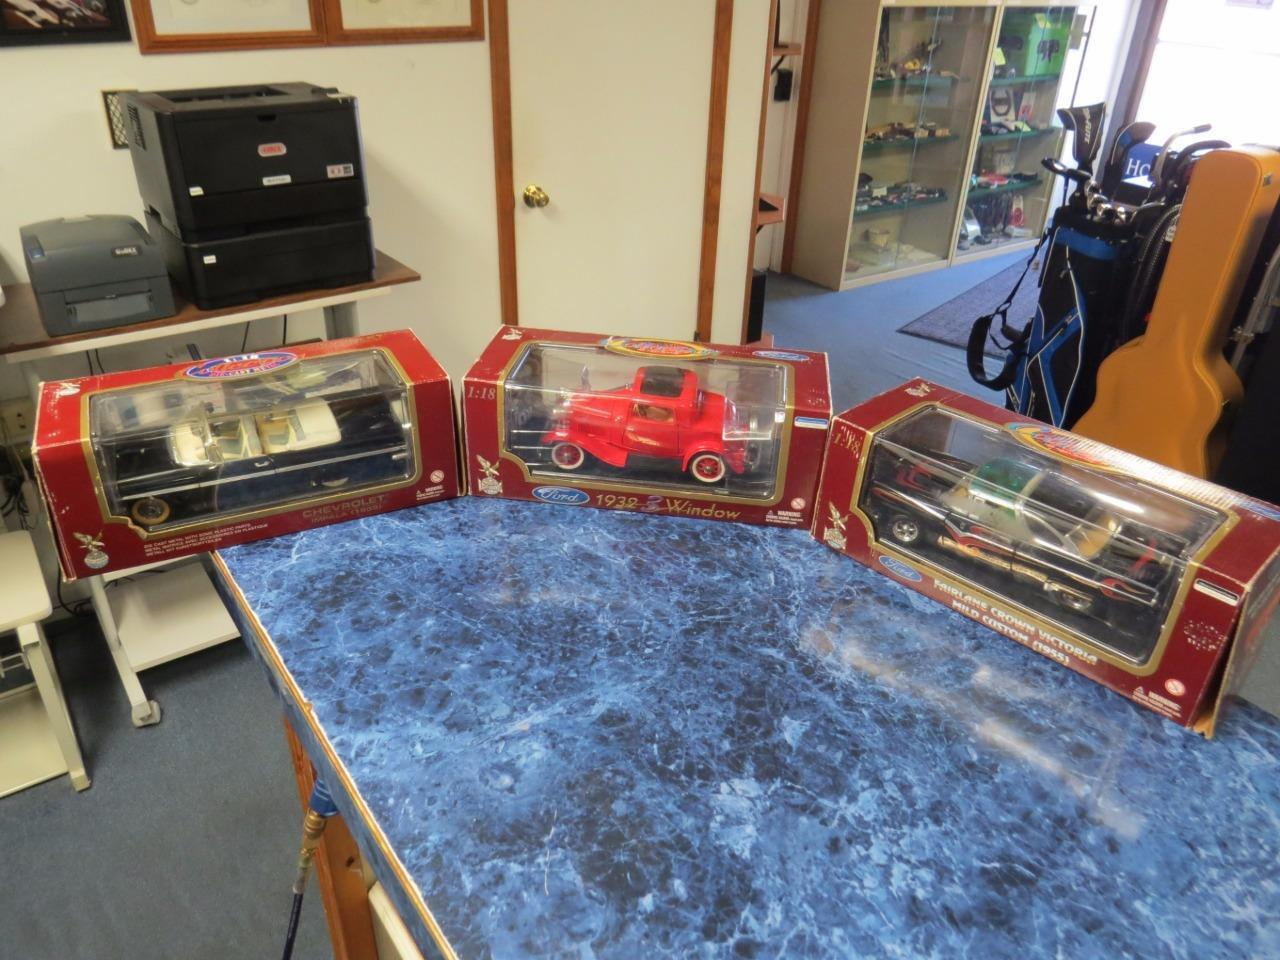 3 Road Legends 1 18 Diecast '55 Crown Victoria 59 Chevy Impala & '32 Ford 3 Door